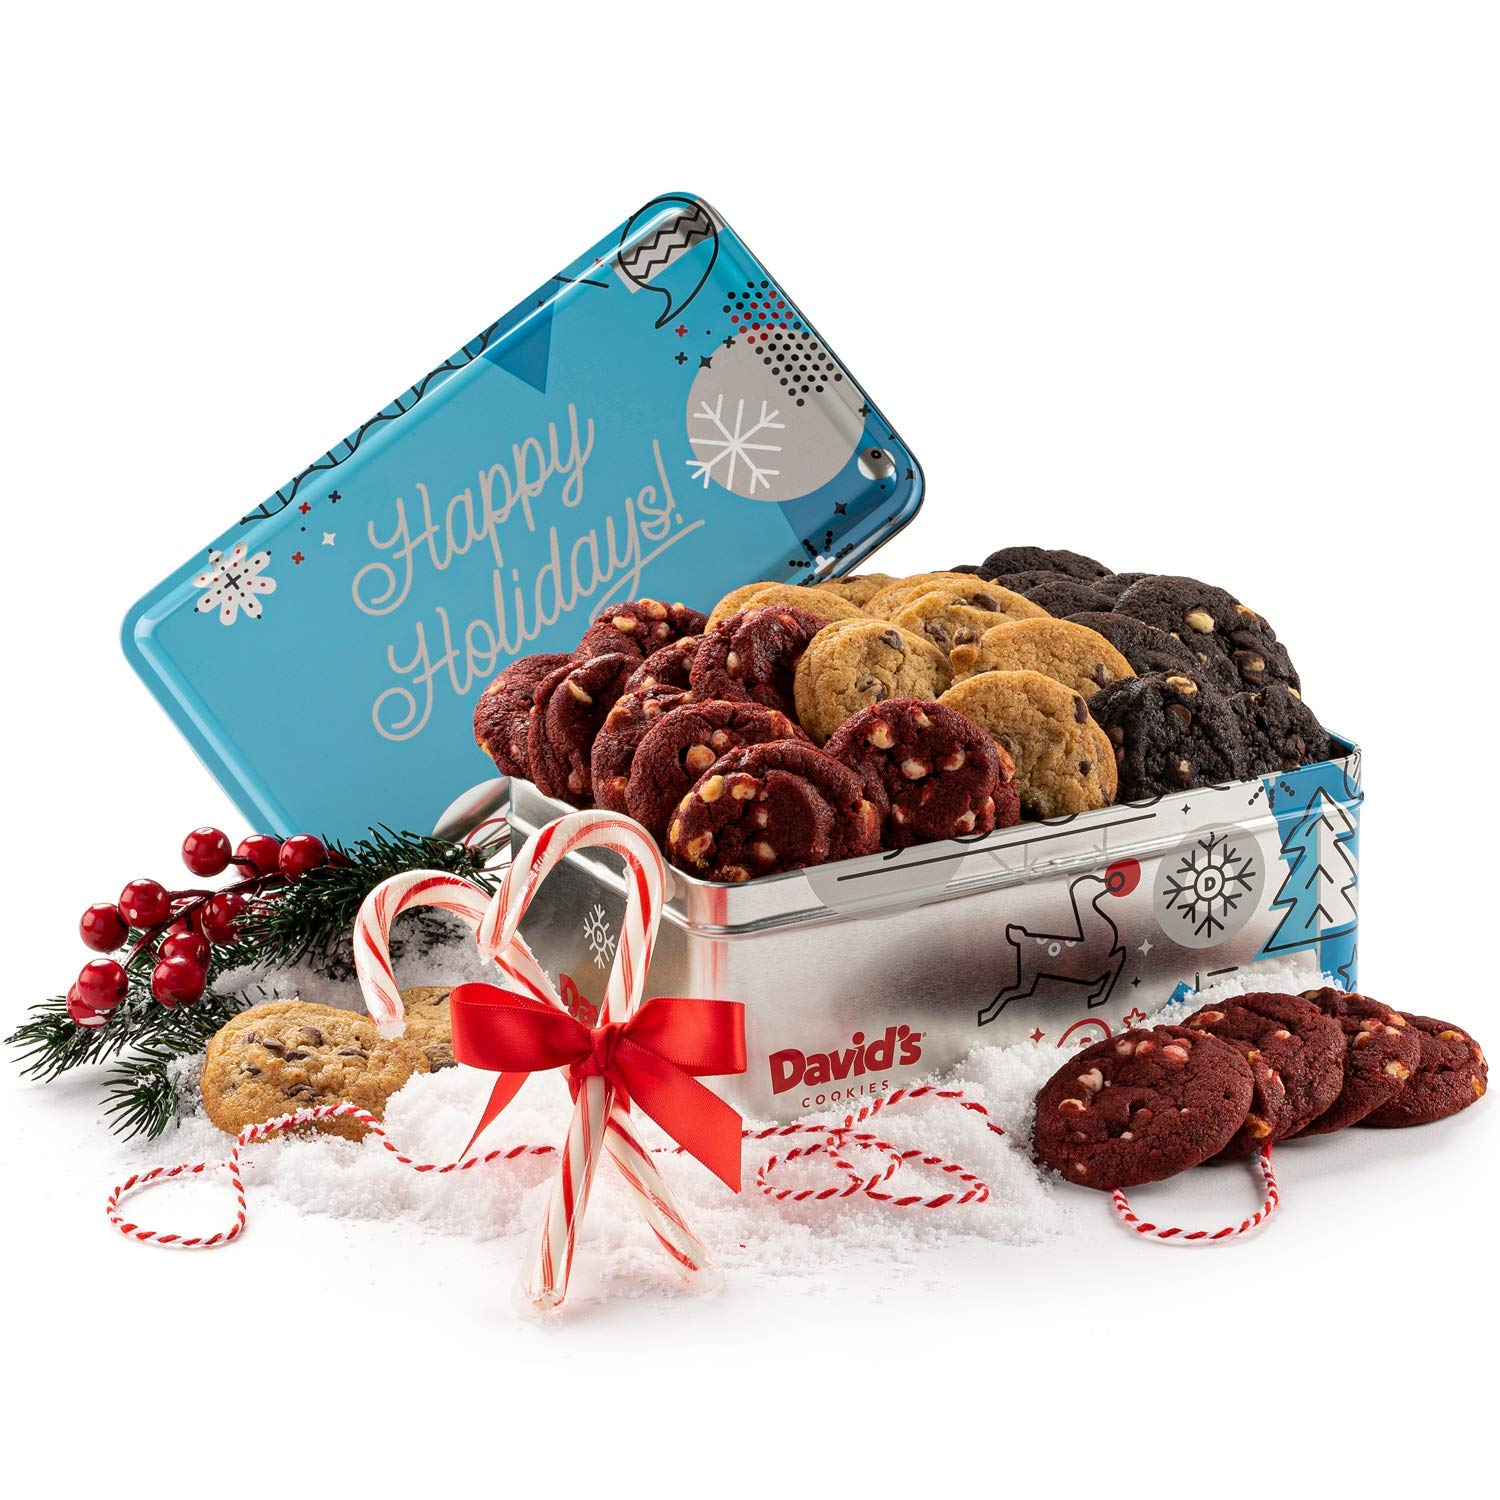 David's Fresh-Baked Winter Wonderland Tin, 0.5 Oz Assorted Mini Cookies with Chocolate Chip, Chocolate & White Chocolate Chip & Red Velvet Cookies, Gourmet Christmas Holiday & Corporate Food Gift